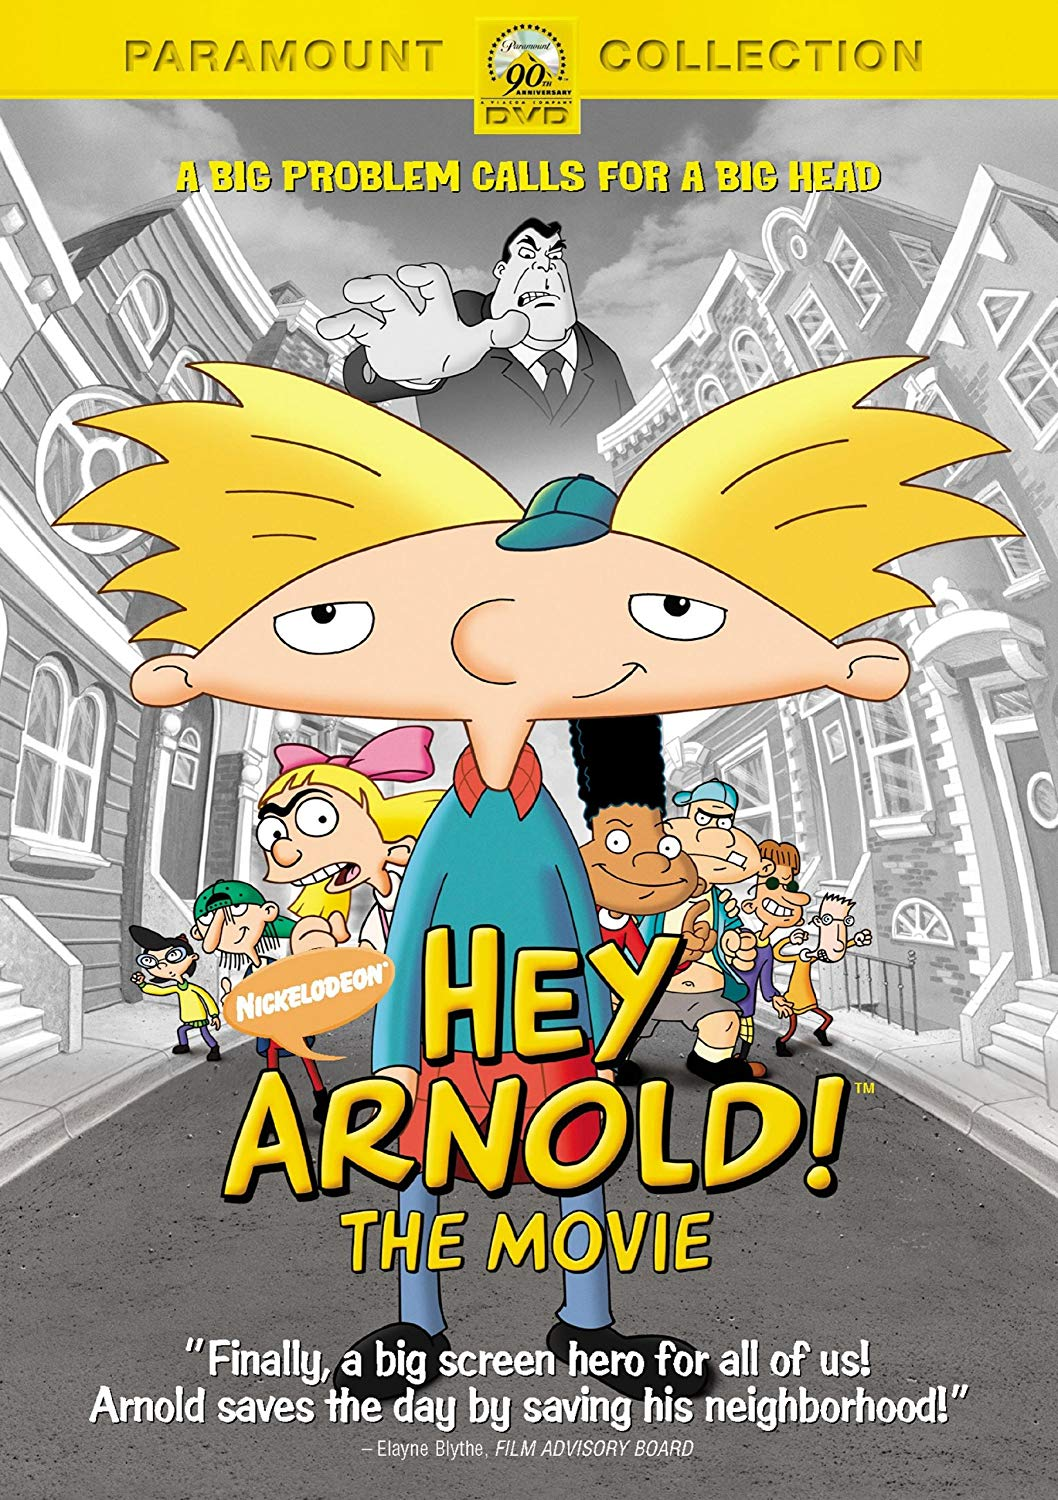 Hey Arnold! [TV Series] - Hey Arnold! The Movie